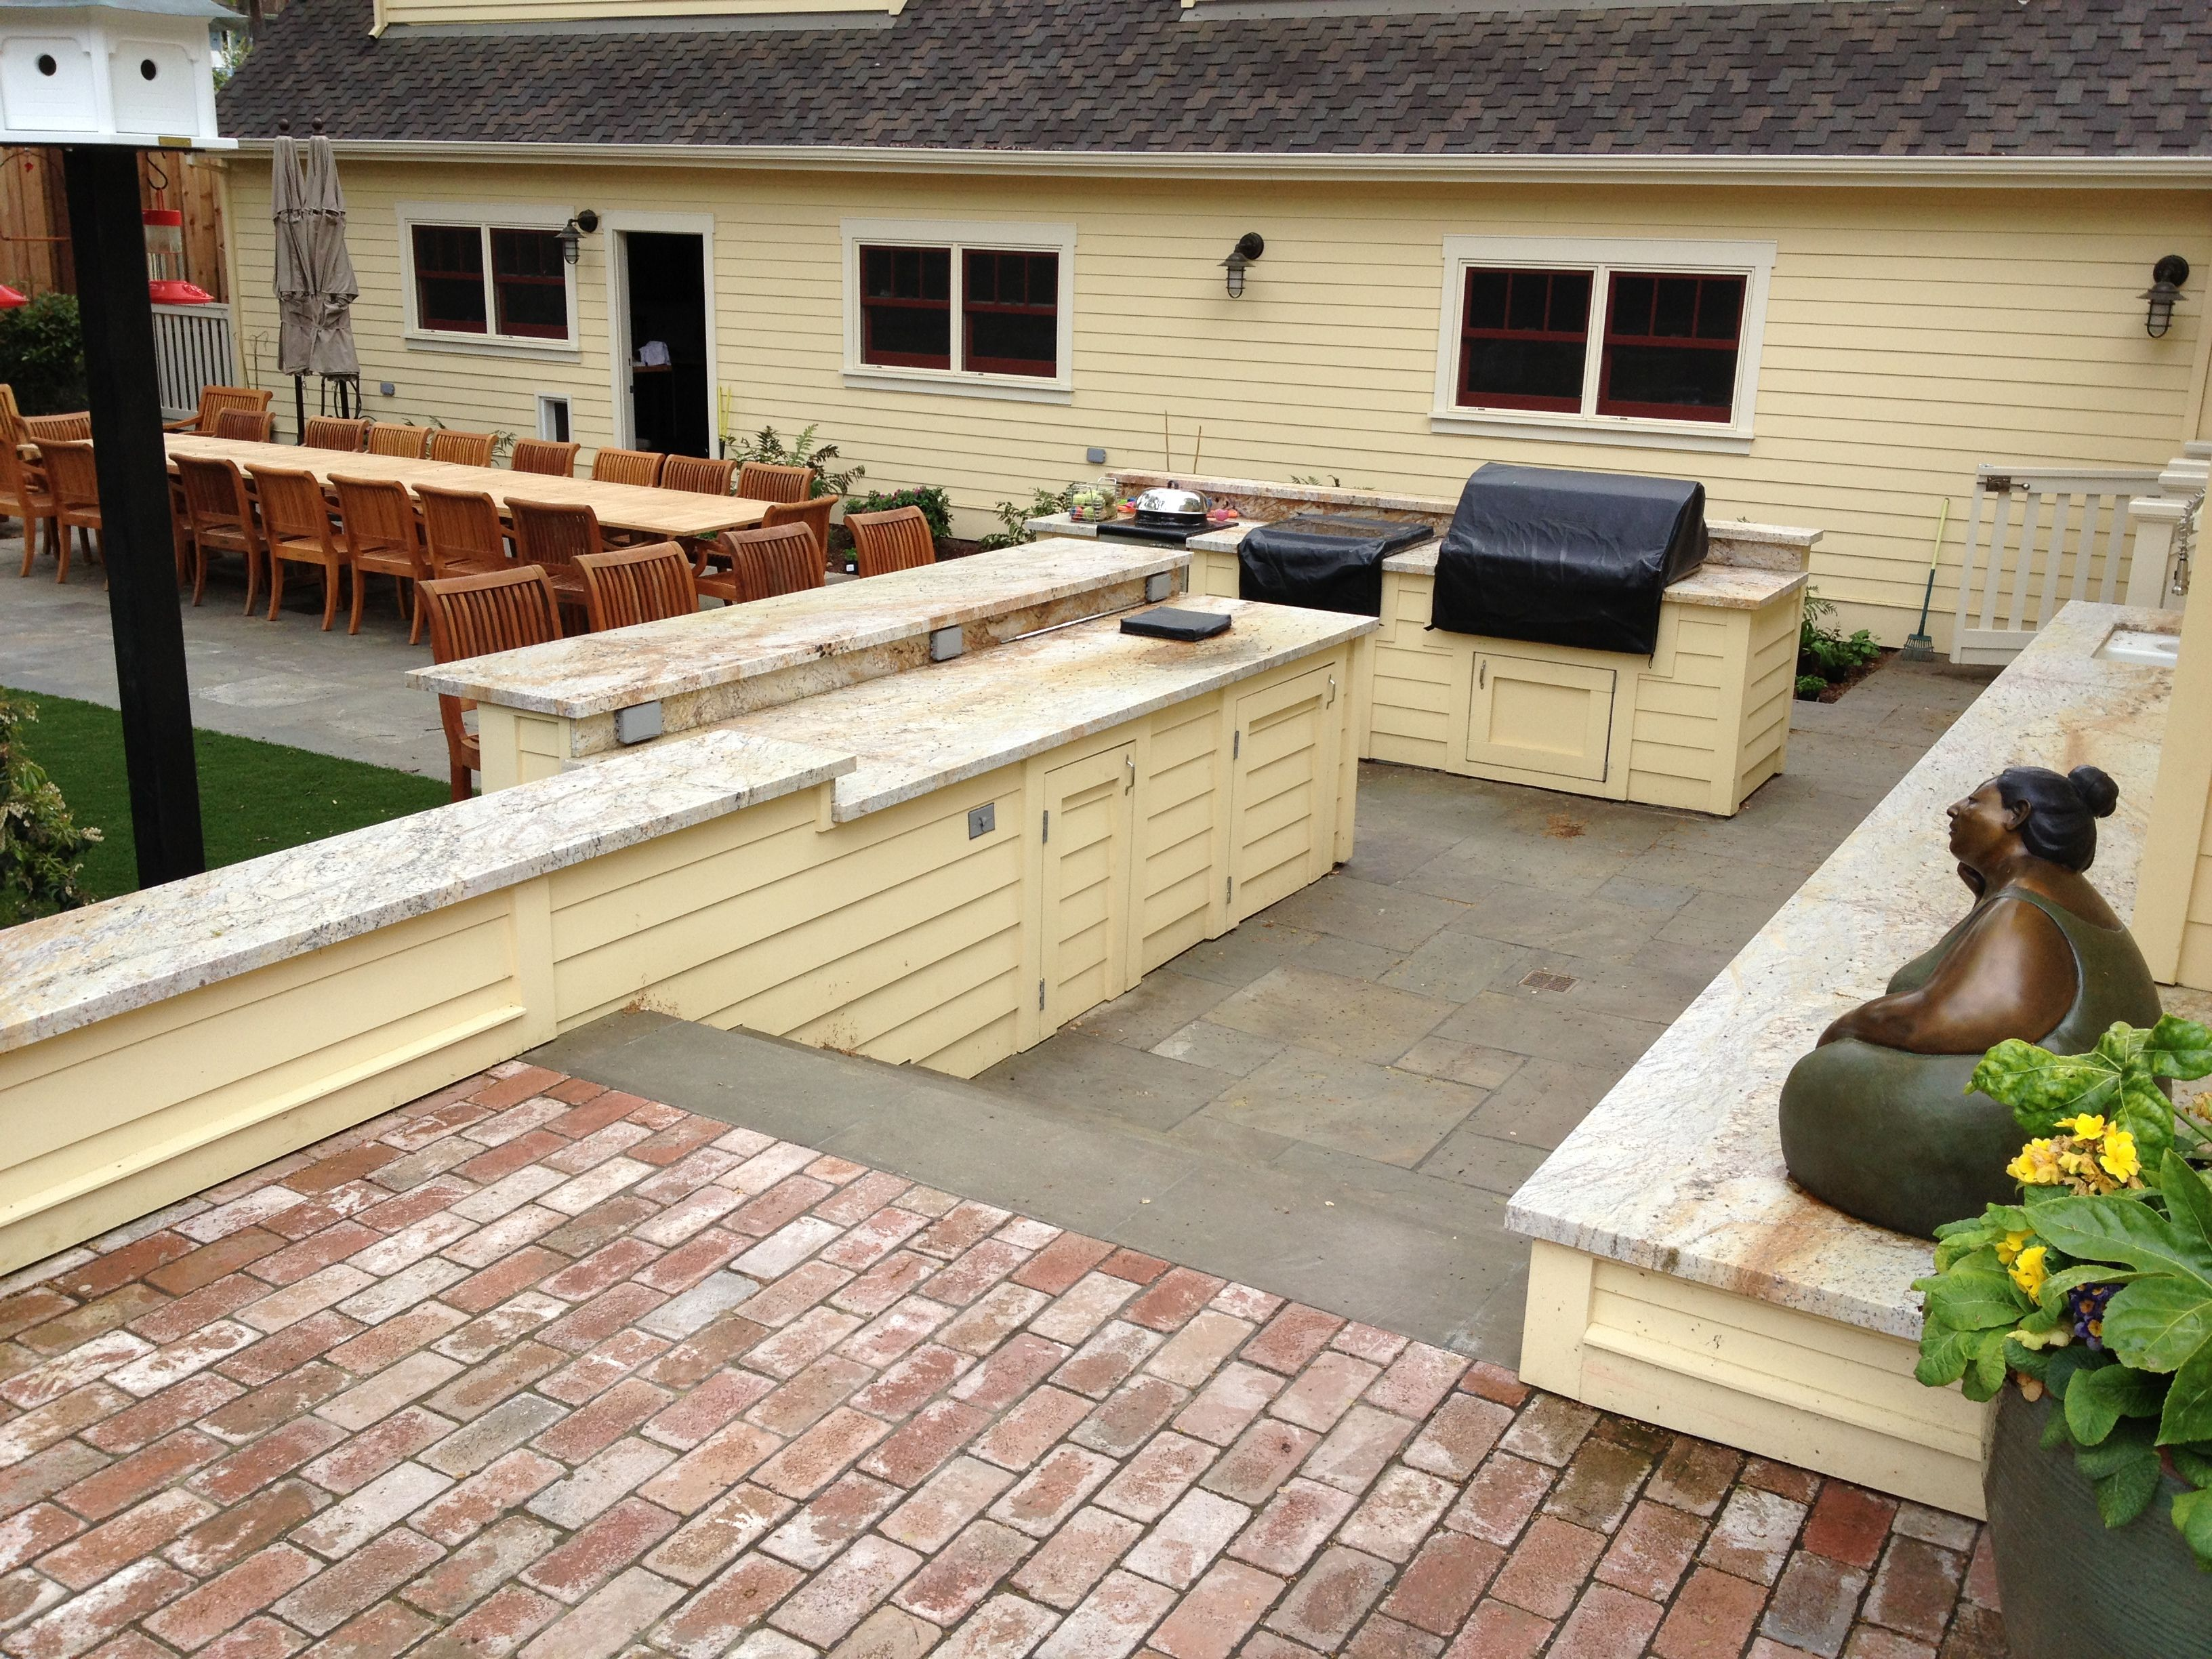 Outdoor Kitchen Sides Of Counter To Match Siding Of House Granite Counters Contractor Morgenroth Deve Farmhouse Style House Farmhouse Style Outdoor Kitchen